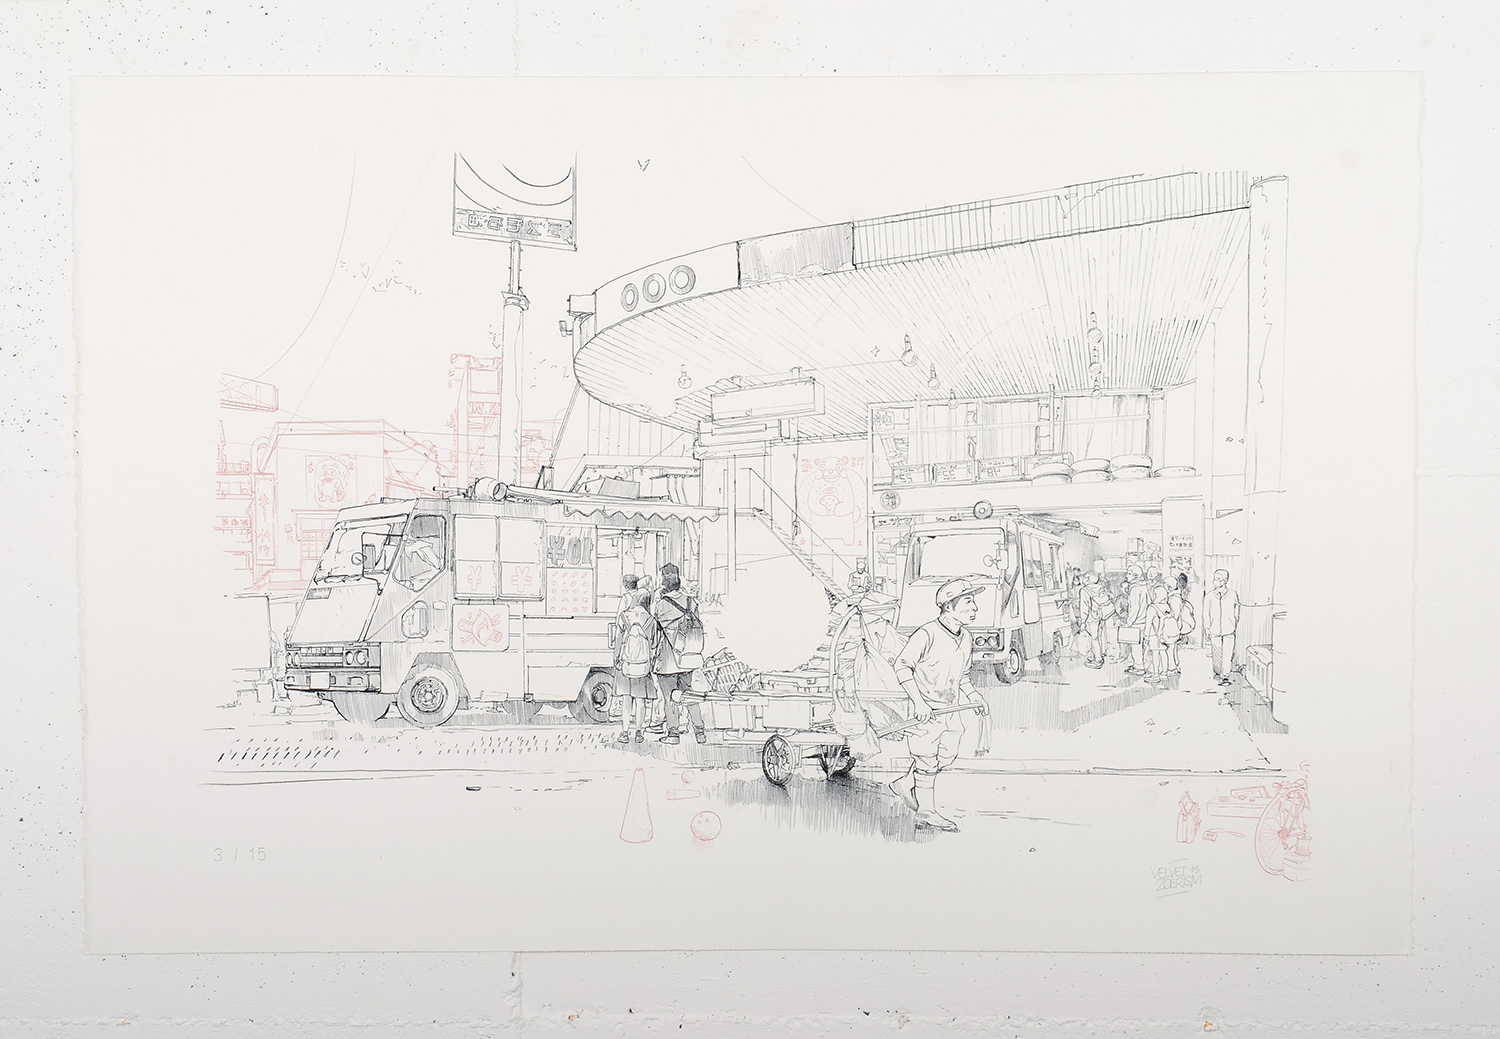 zoer_velvet_street_food_lithographie_CSX_stone_lithograph_urdla_graffiti_process_zoerism_soldart_edition_royx_nicolas_royol_43